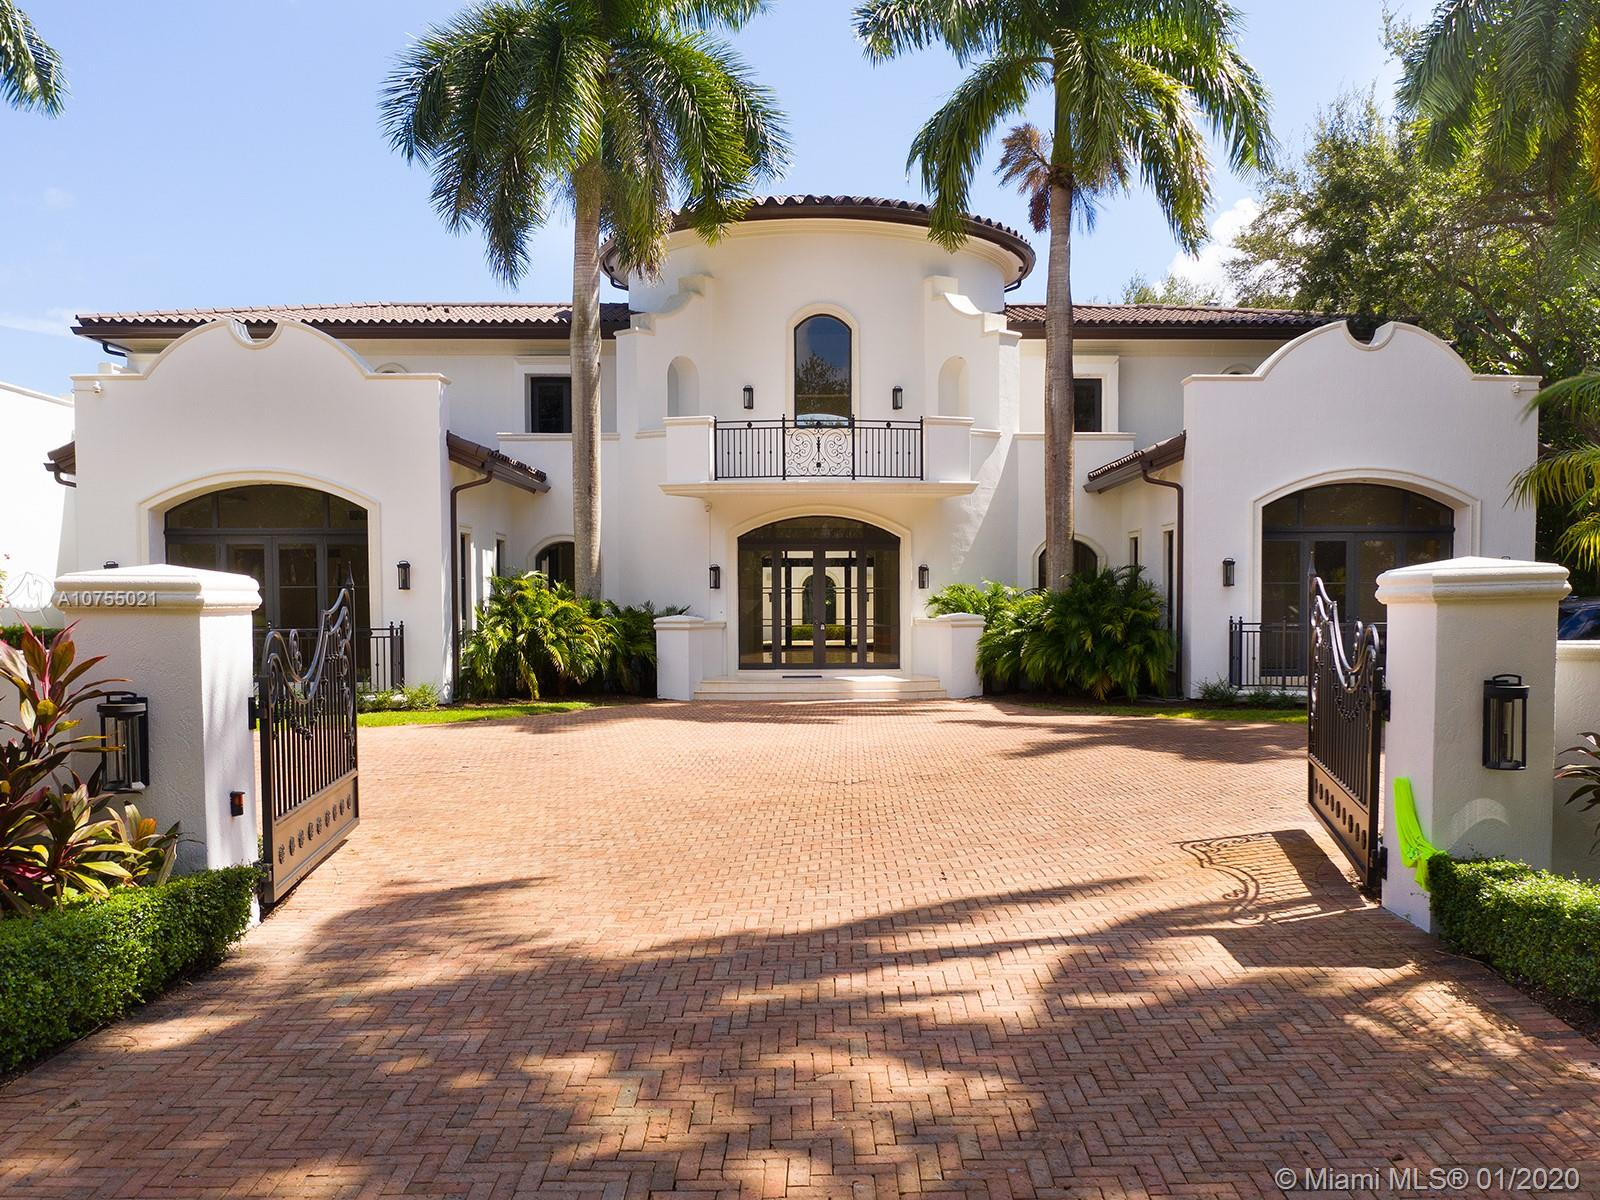 9401 SW 63rd Ct  For Sale A10755021, FL